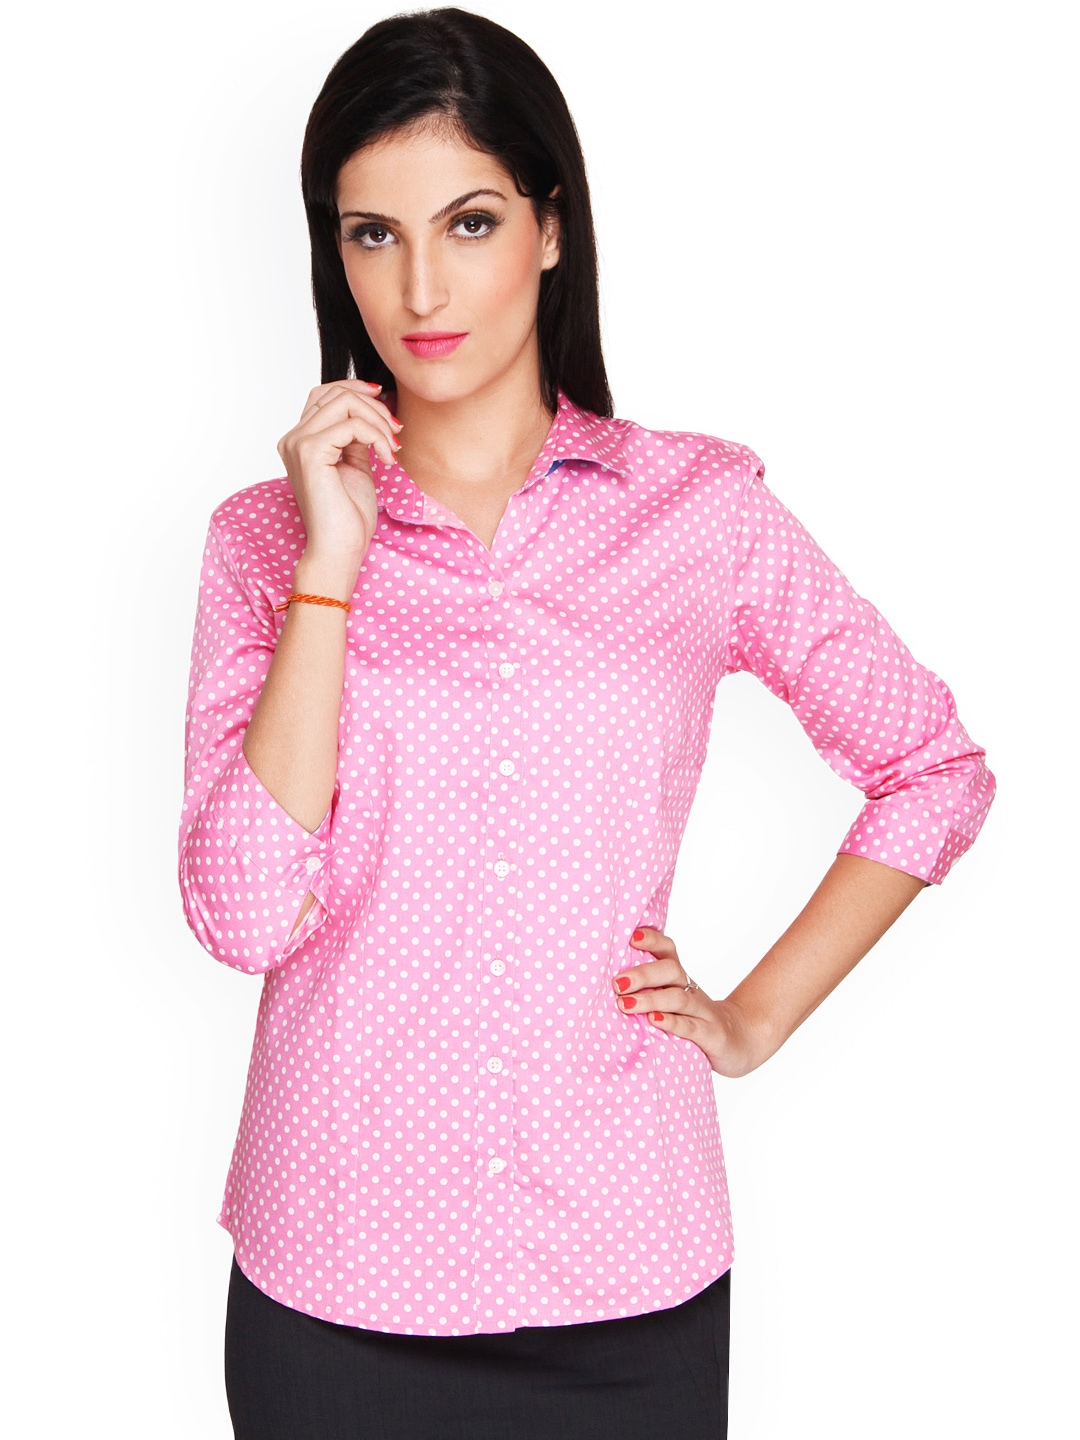 Best prices on Pink polka dot blouse in Women's Shirts & Blouses online. Visit Bizrate to find the best deals on top brands. Read reviews on Clothing & Accessories merchants and buy with confidence.